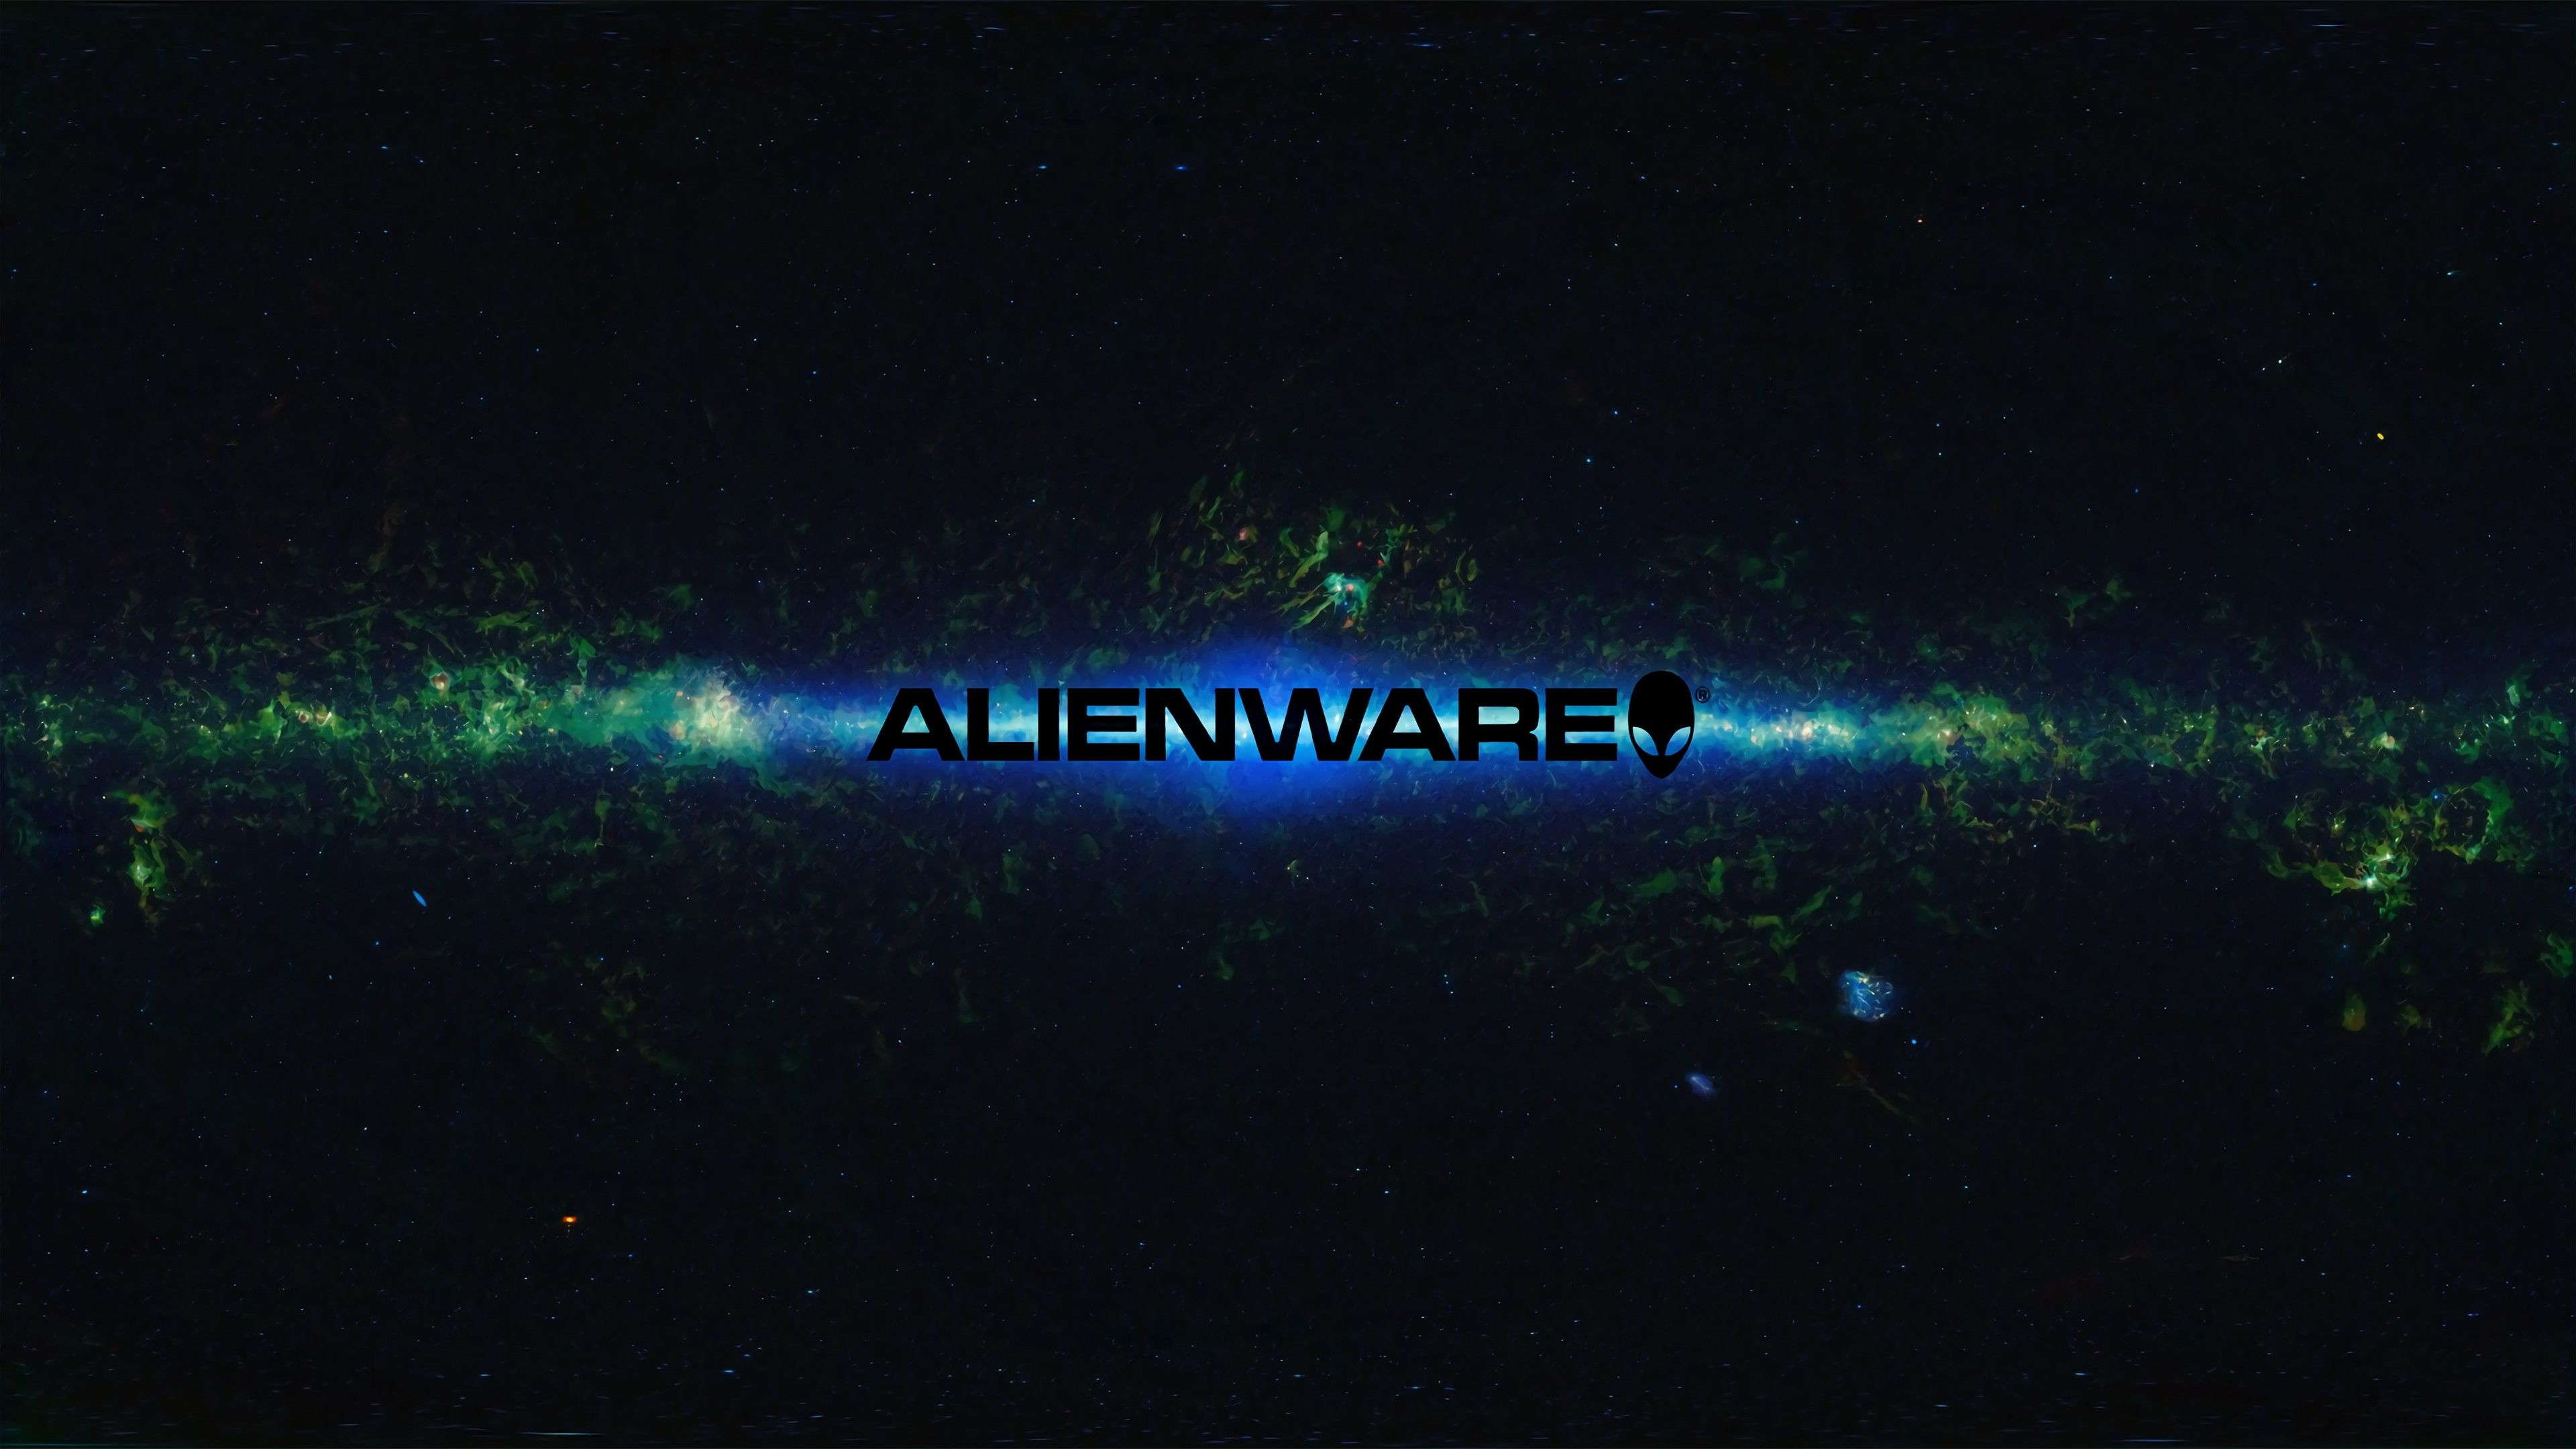 3840x2160 Alienware Wallpapers Top Free 3840x2160 Alienware